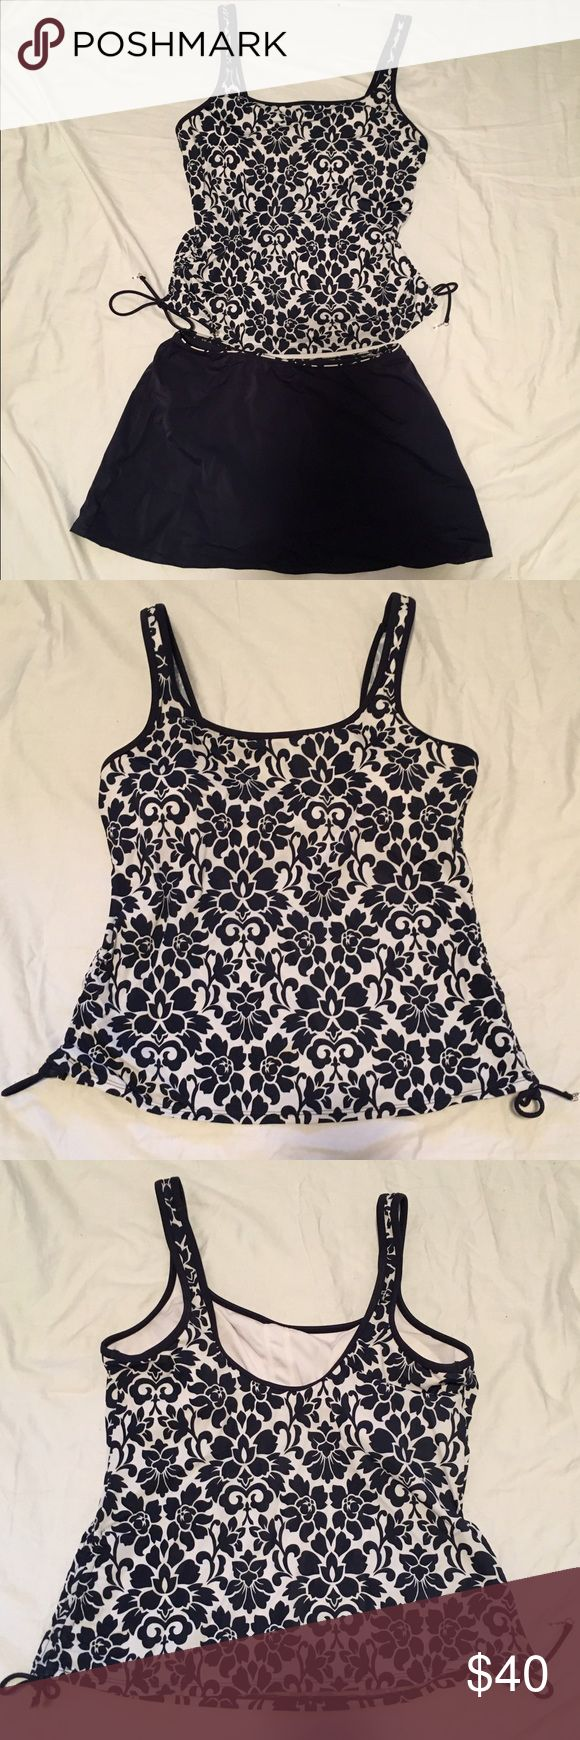 Navy Blue and White Floral Tankini Beautiful white and navy blue floral patterned tankini top with navy blue swim skirt. Only worn once. The top has adjustable ruching on the lower sides (picture 4) and a soft cup (picture 5). Skirt has a patterned waistband (picture 7) and attached scoop liner (picture 8). croft & barrow Swim Bikinis